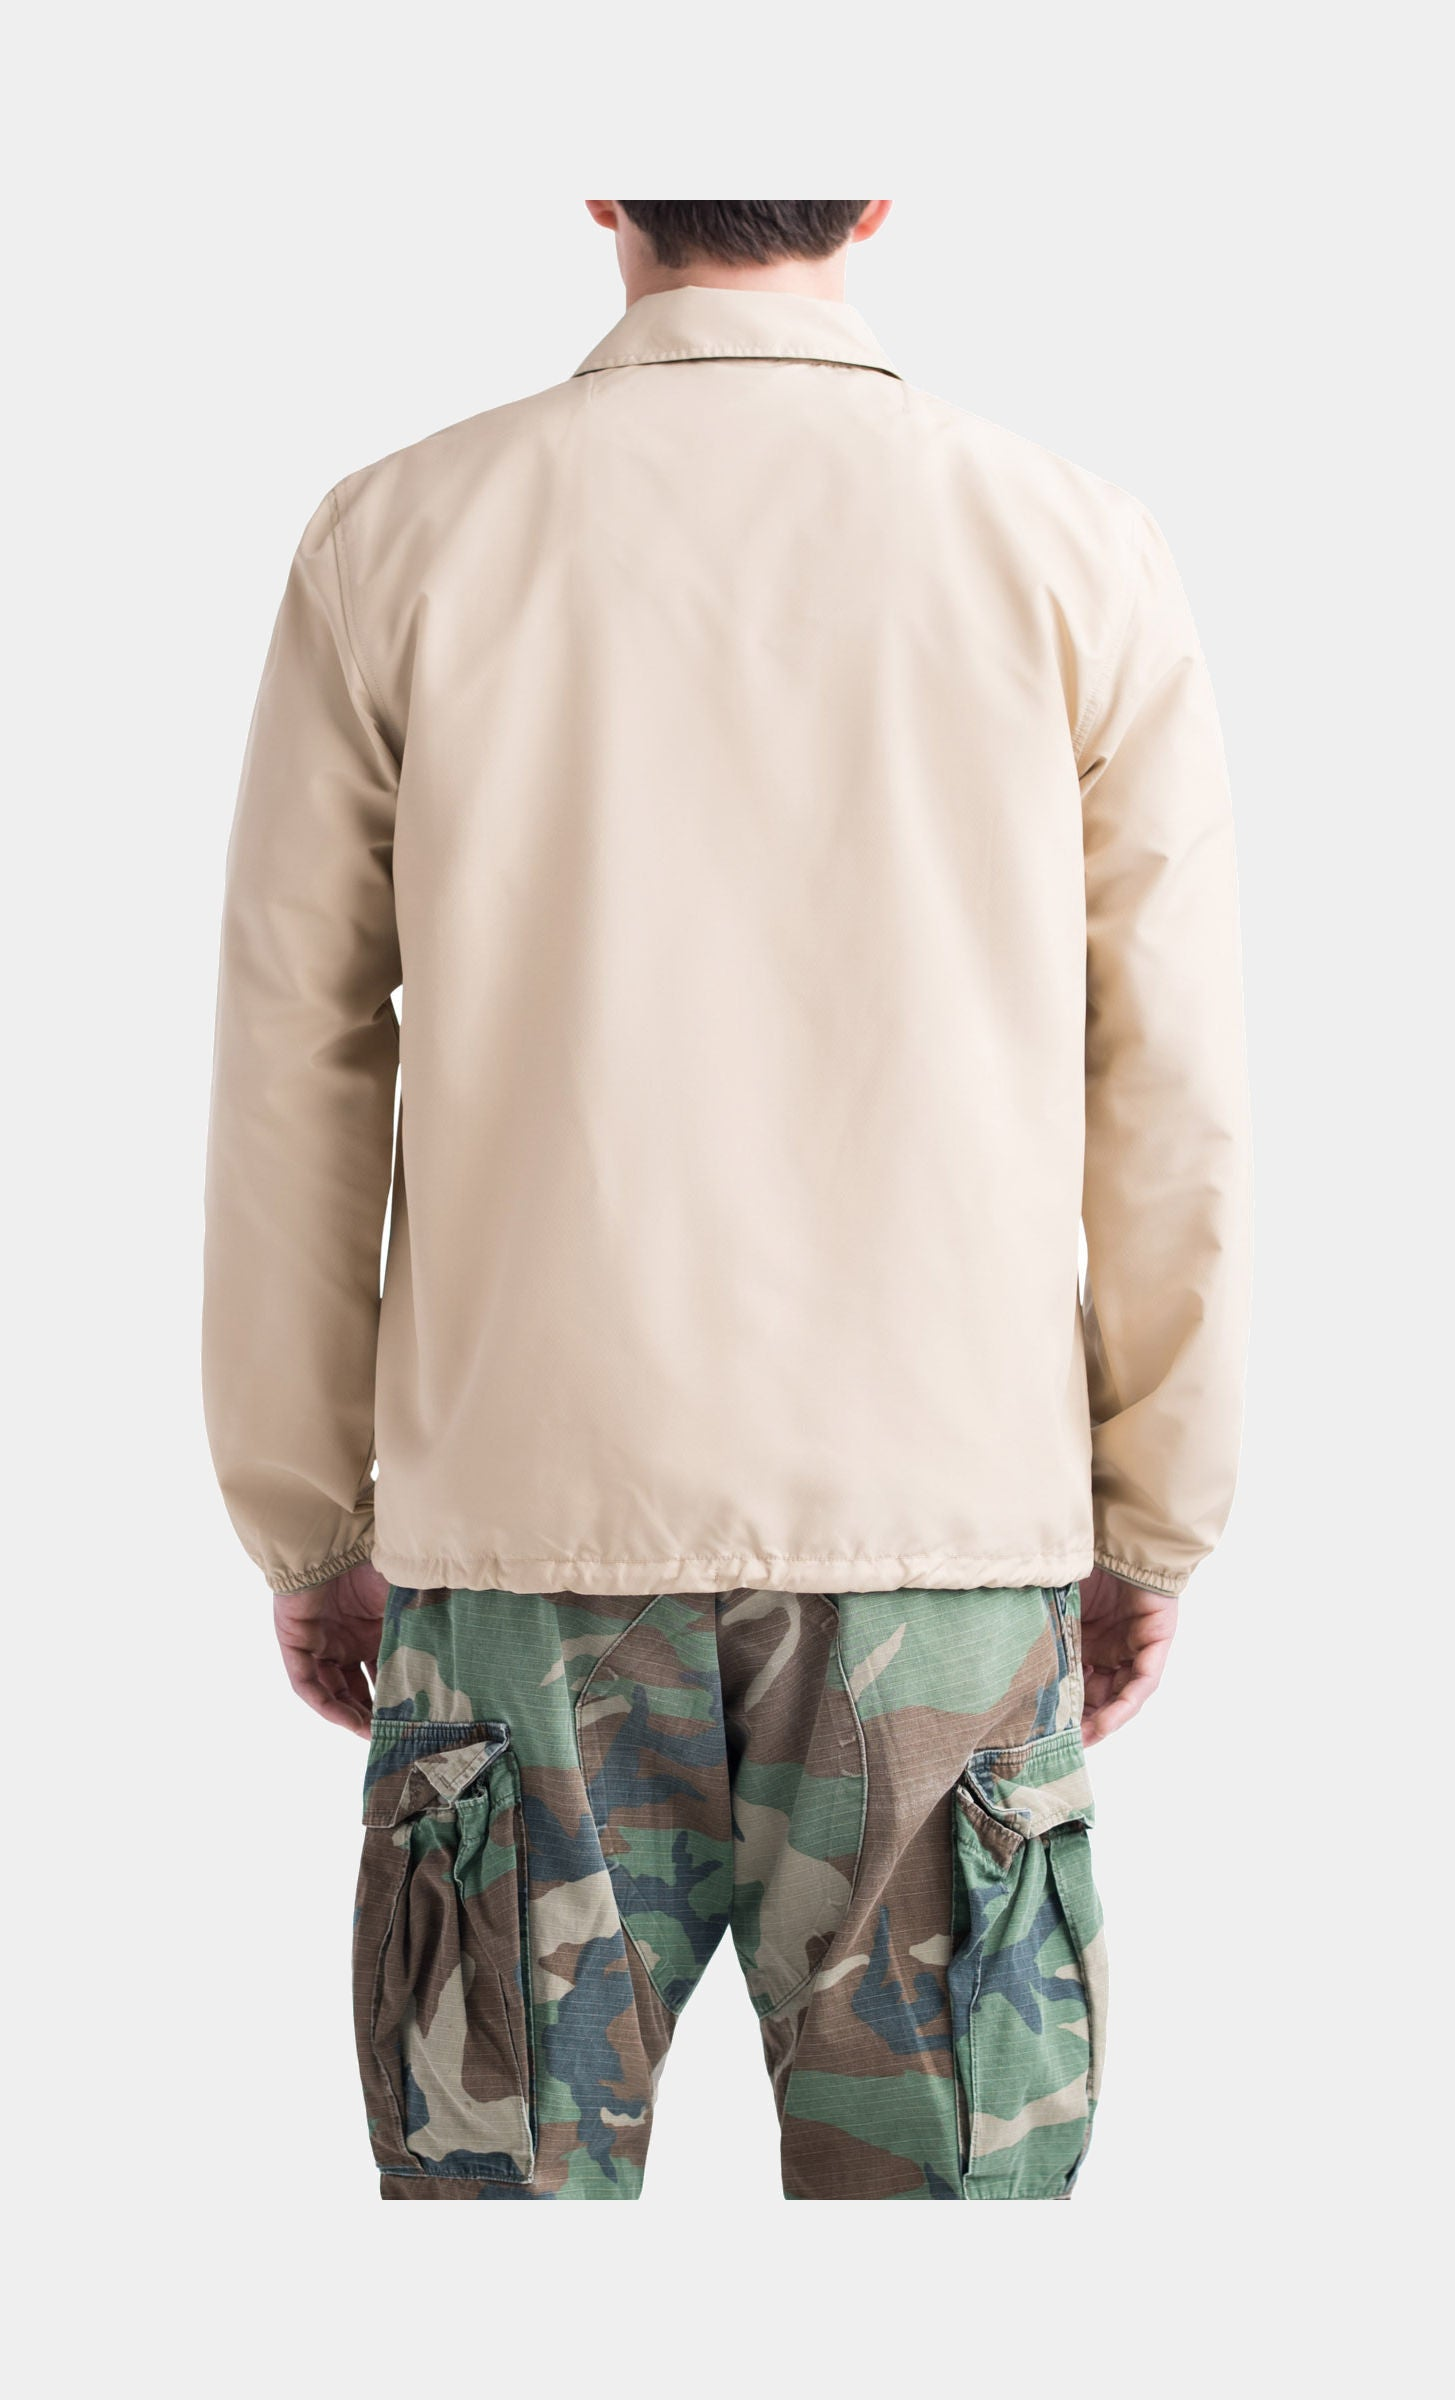 Voyage Coach Mens Jacket (Tan Brown)